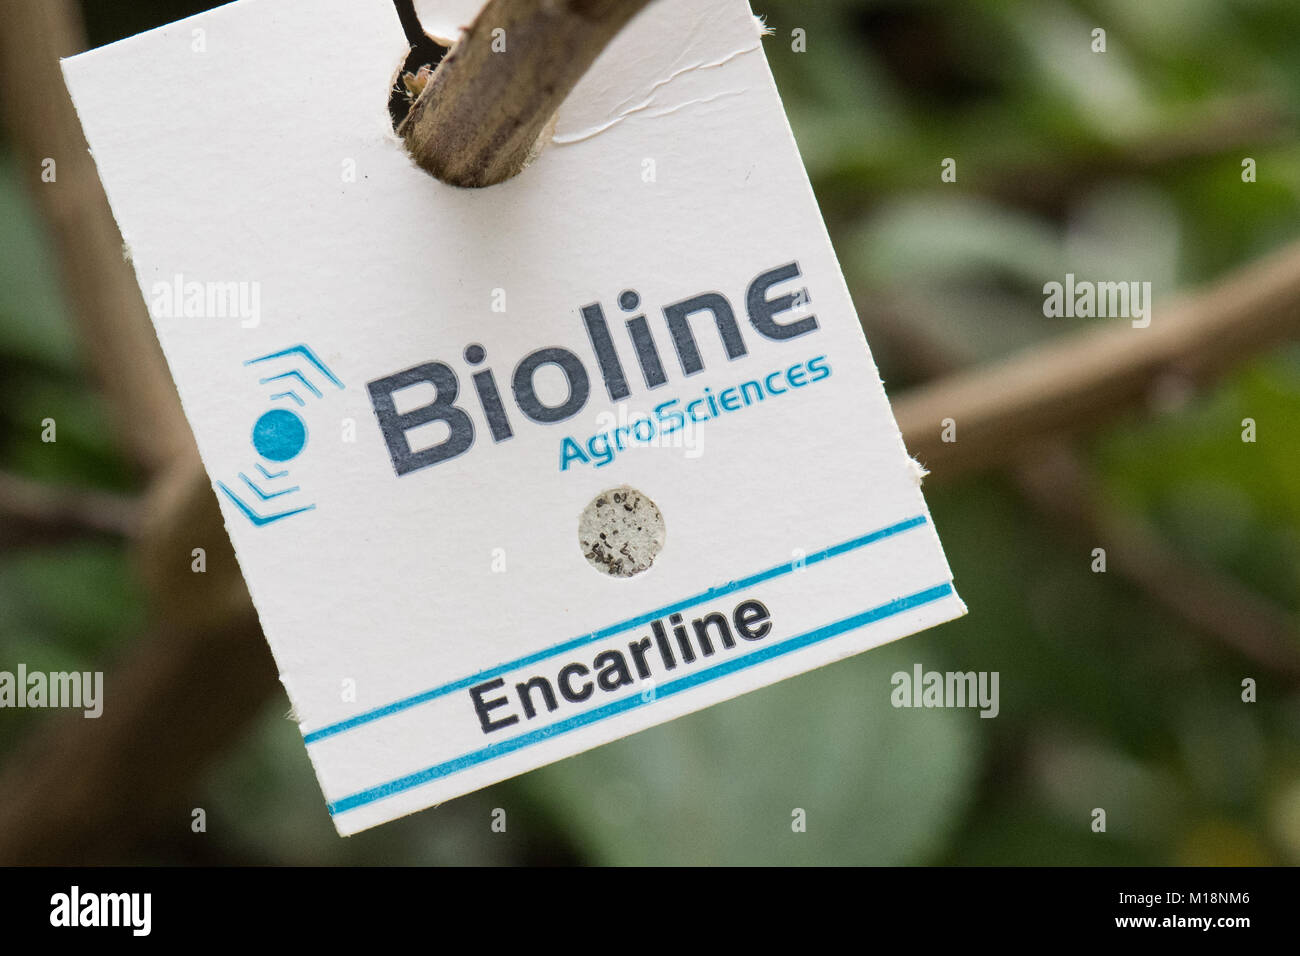 biological control in the greenhouse - Encarline card of a parasitoid wasp - Encarsia formosa used to control whitefly - Stock Image